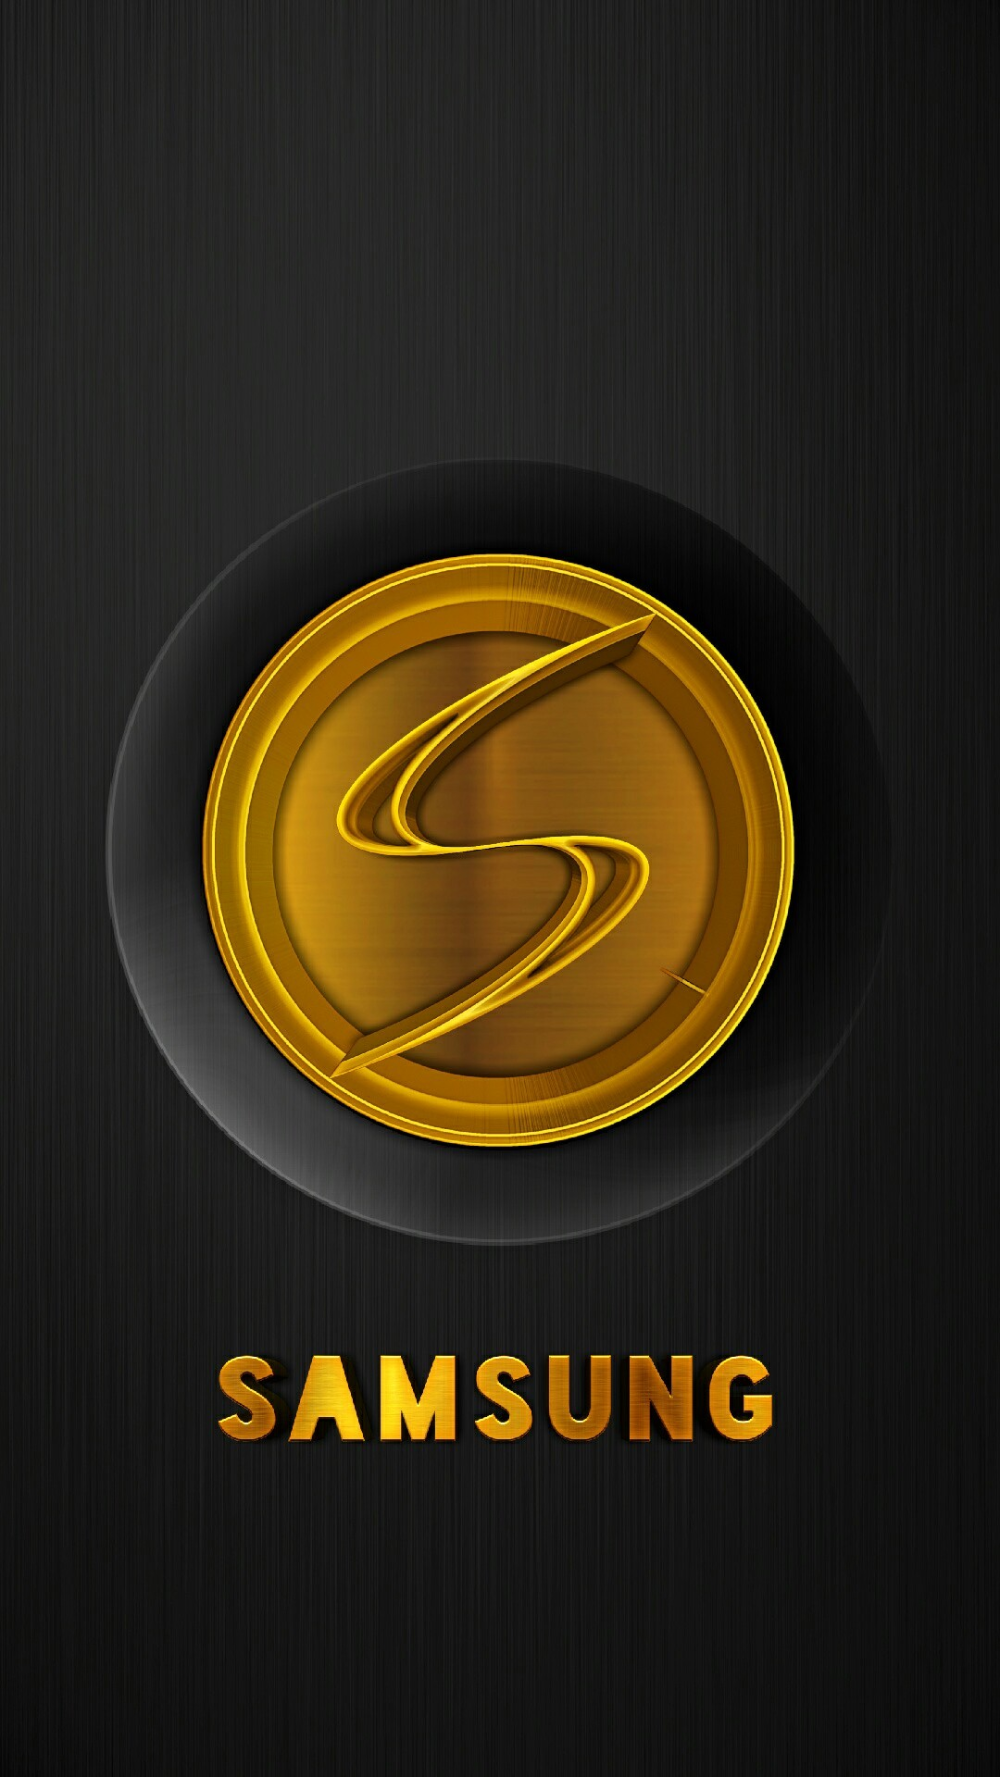 Samsung Logo Wallpapers Samsung Wallpaper Android Samsung Galaxy Wallpaper Pretty Phone Wallpaper